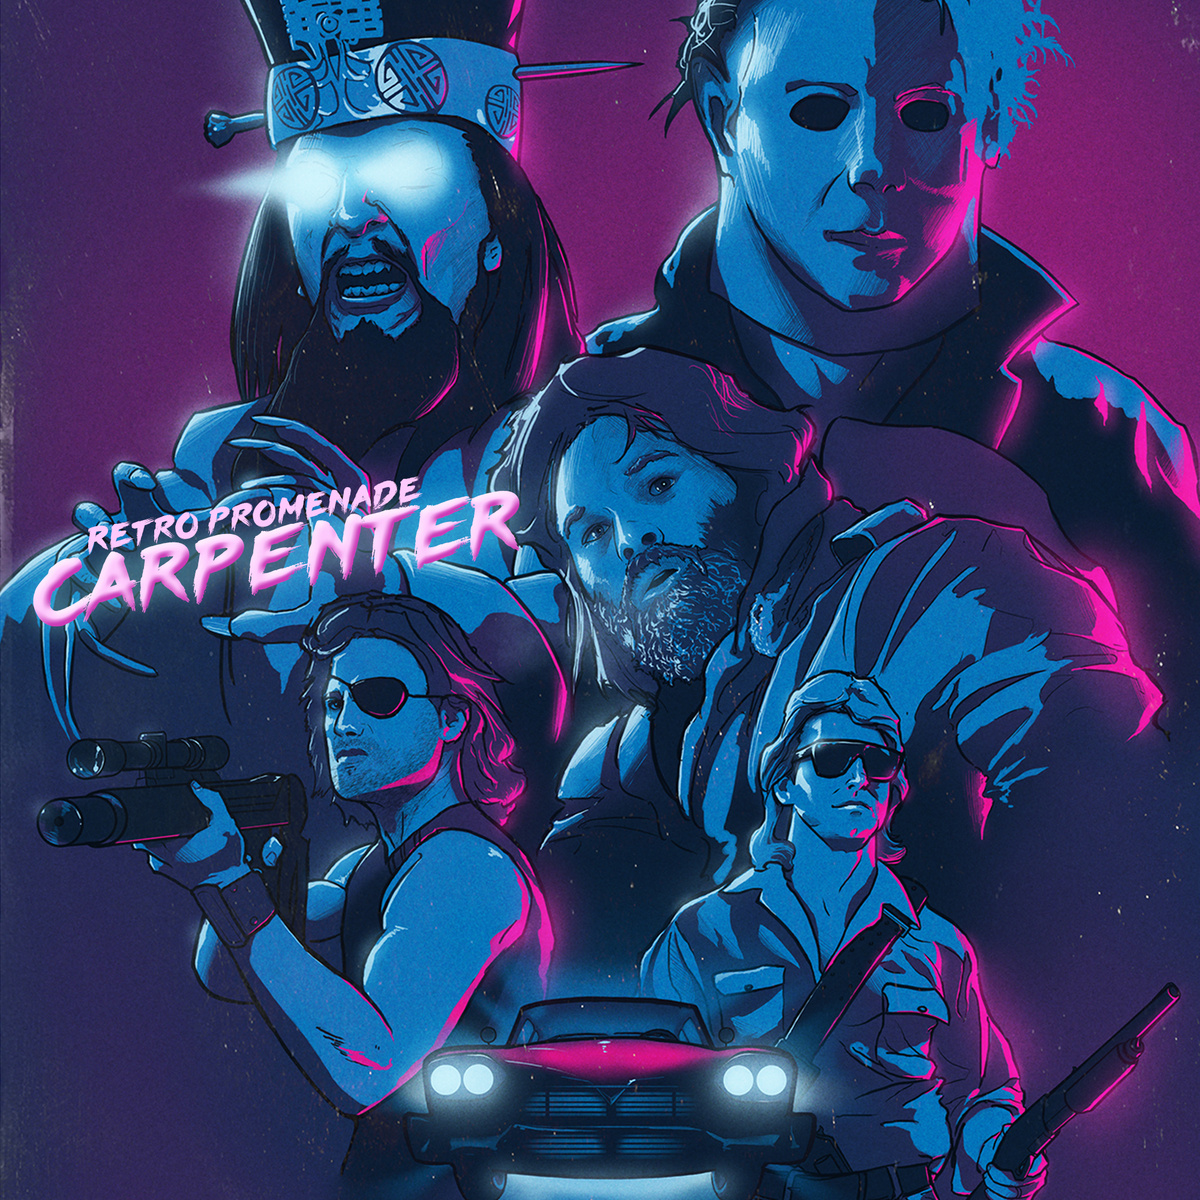 https://retropromenade.bandcamp.com/album/carpenter?hc_location=ufi